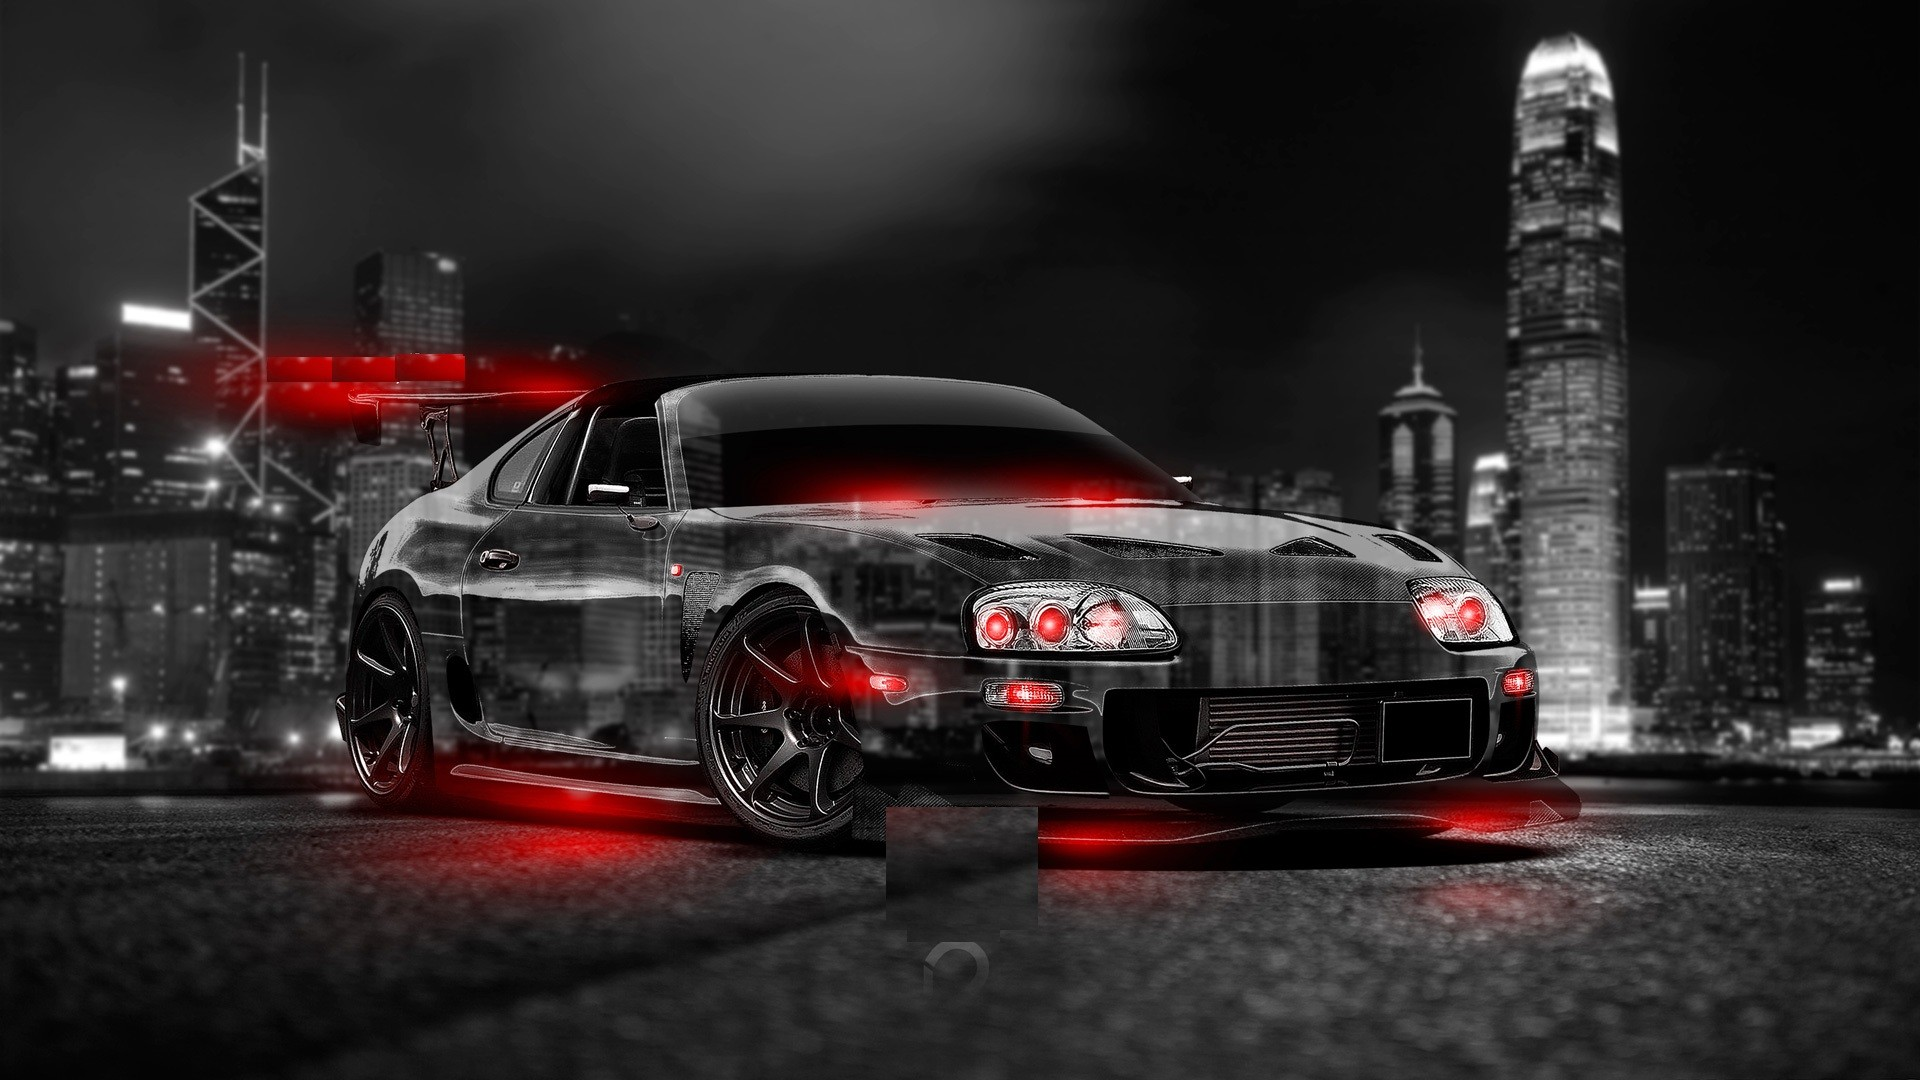 1920x1080 Abstract toyota supra HD Wallpaper